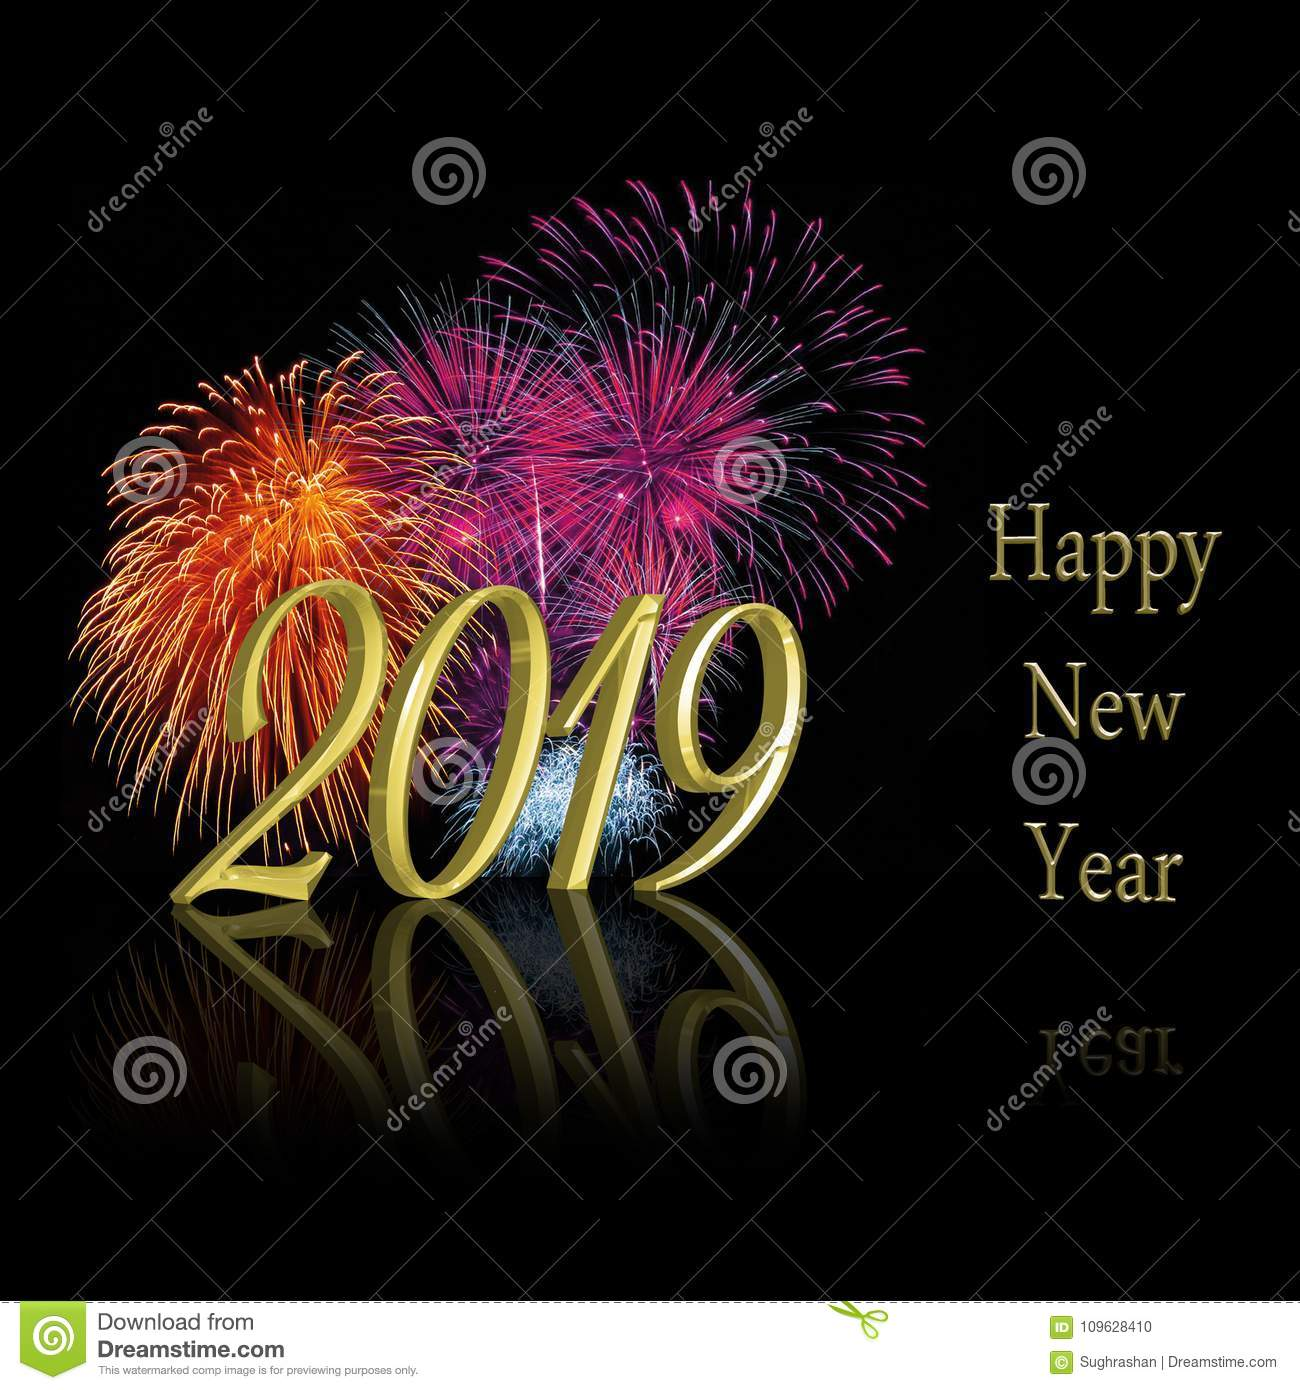 Happy new year 2019 3d